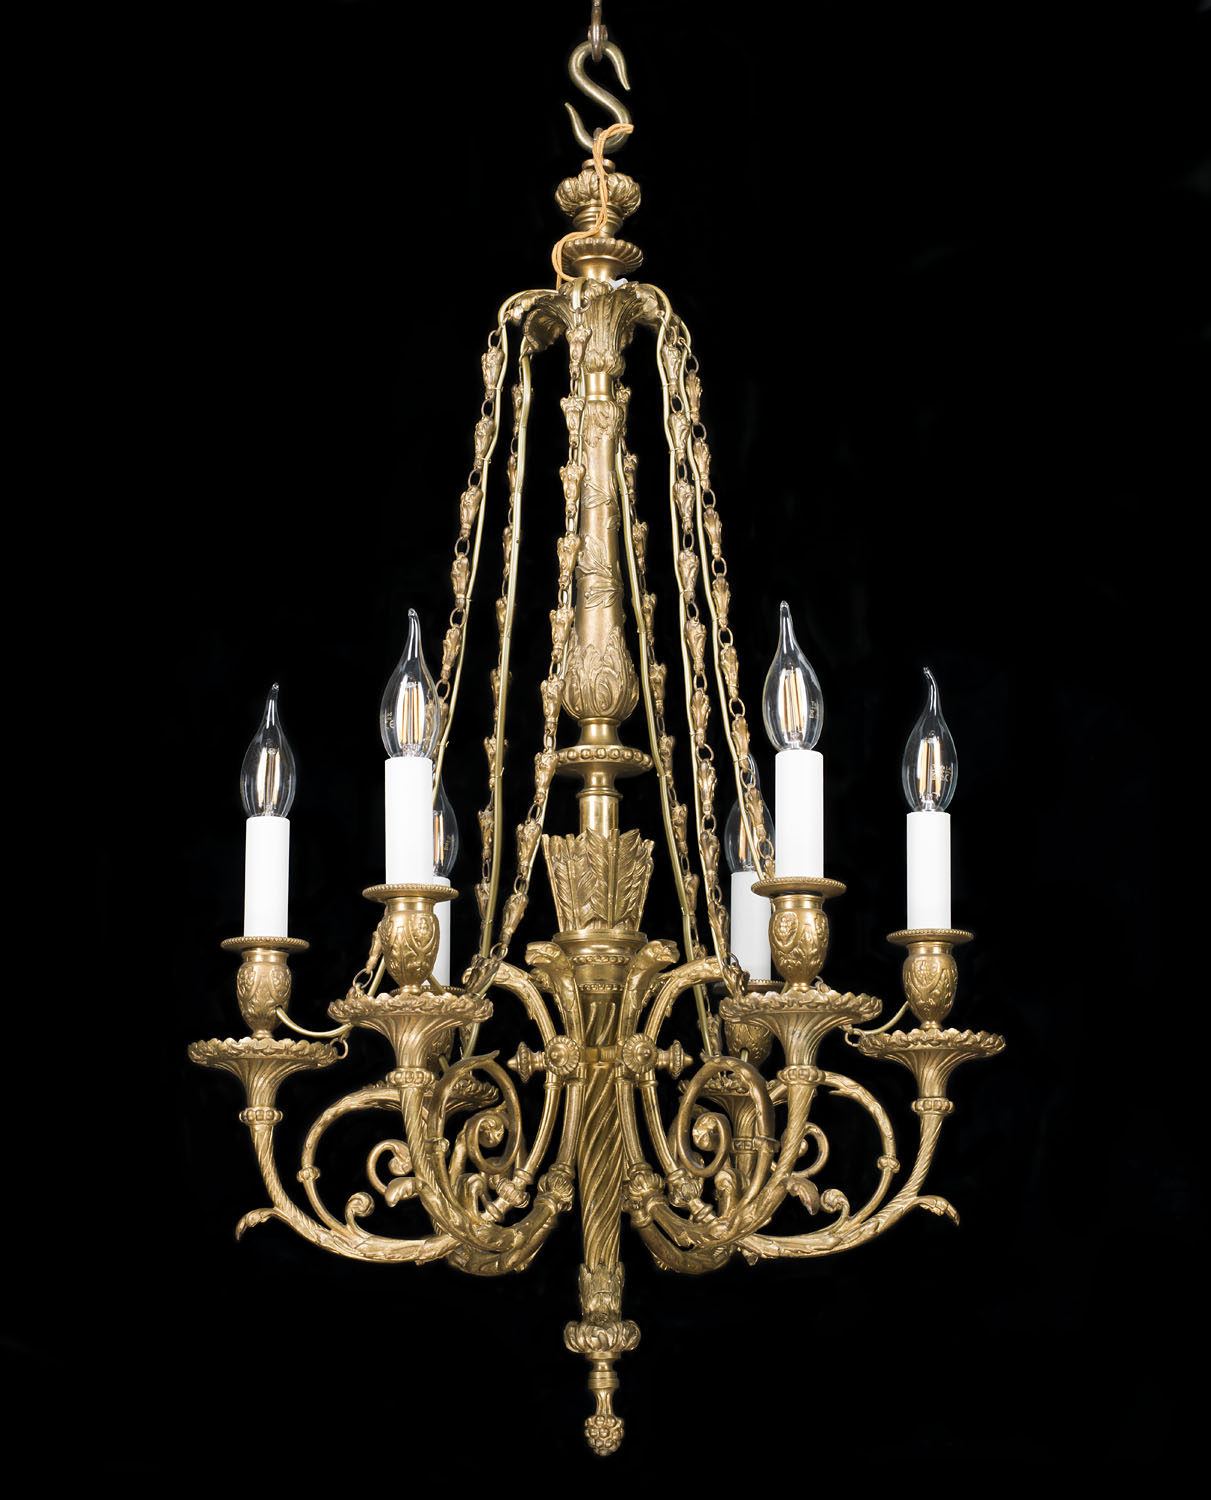 A Neoclassical style large gilt bronze six branch chandelier